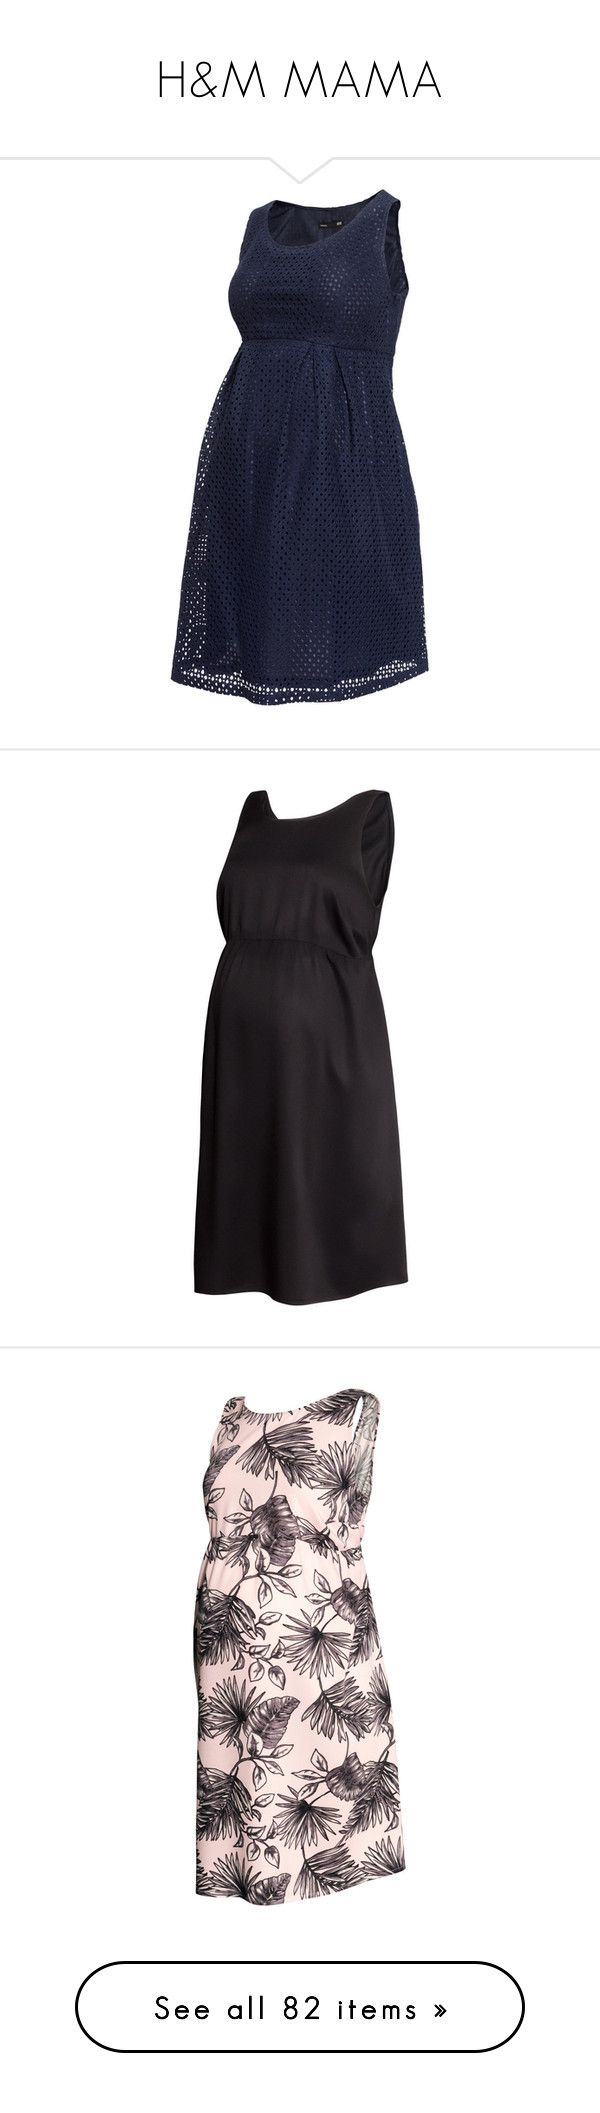 """H&M MAMA"" by alejaborrayo ❤ liked on Polyvore featuring maternity, dresses, mama, maternity clothes, maternity dress, dark blue, black, maternity dresses, baby and mat"